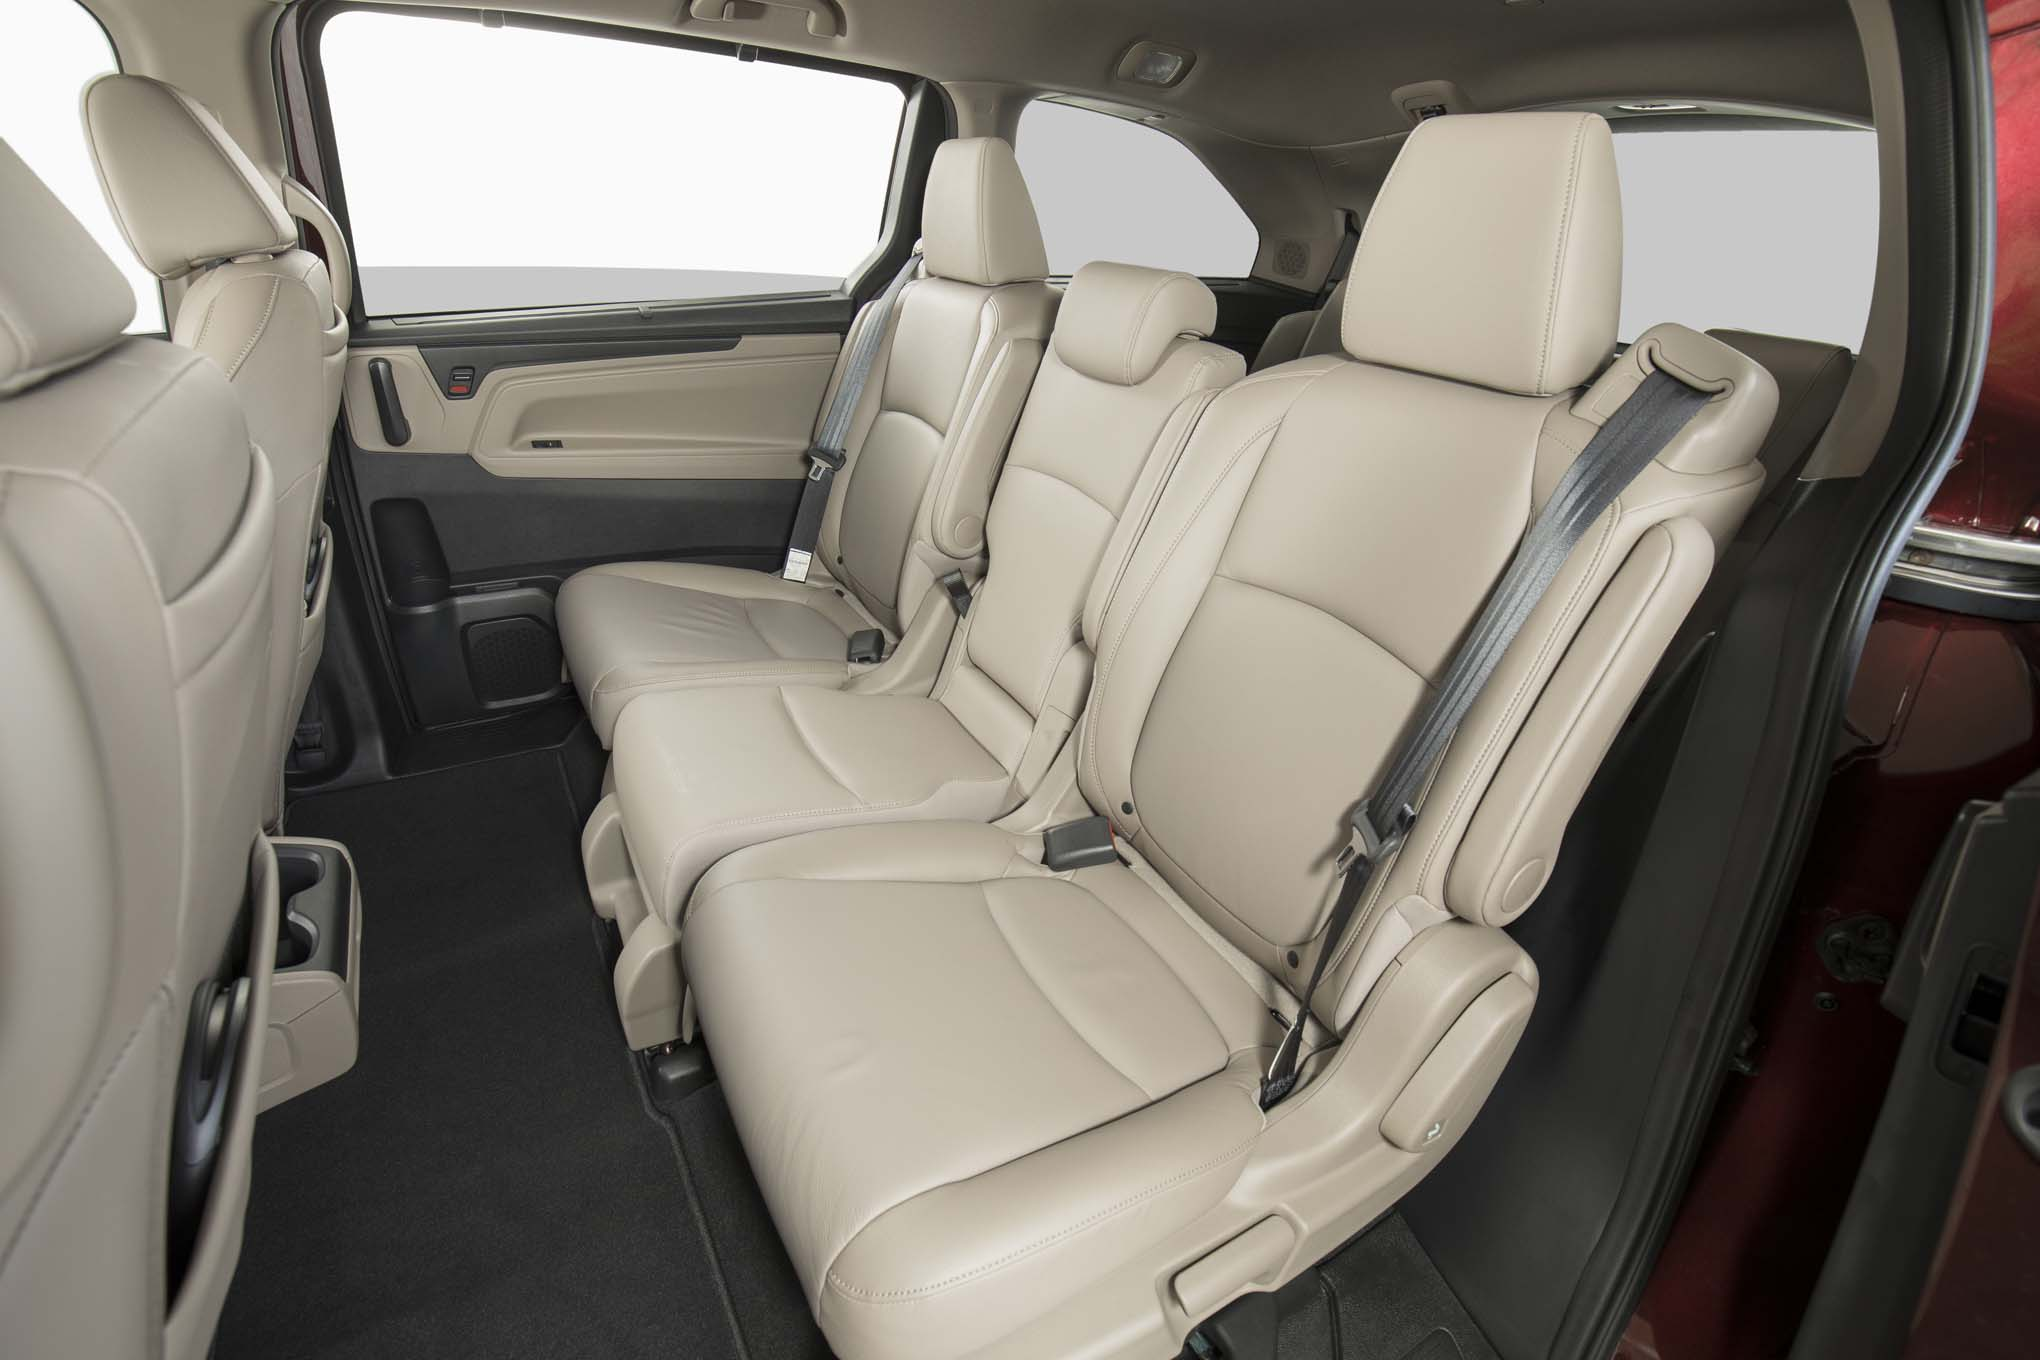 2018 Honda Odyssey Rear Interior Seats 07